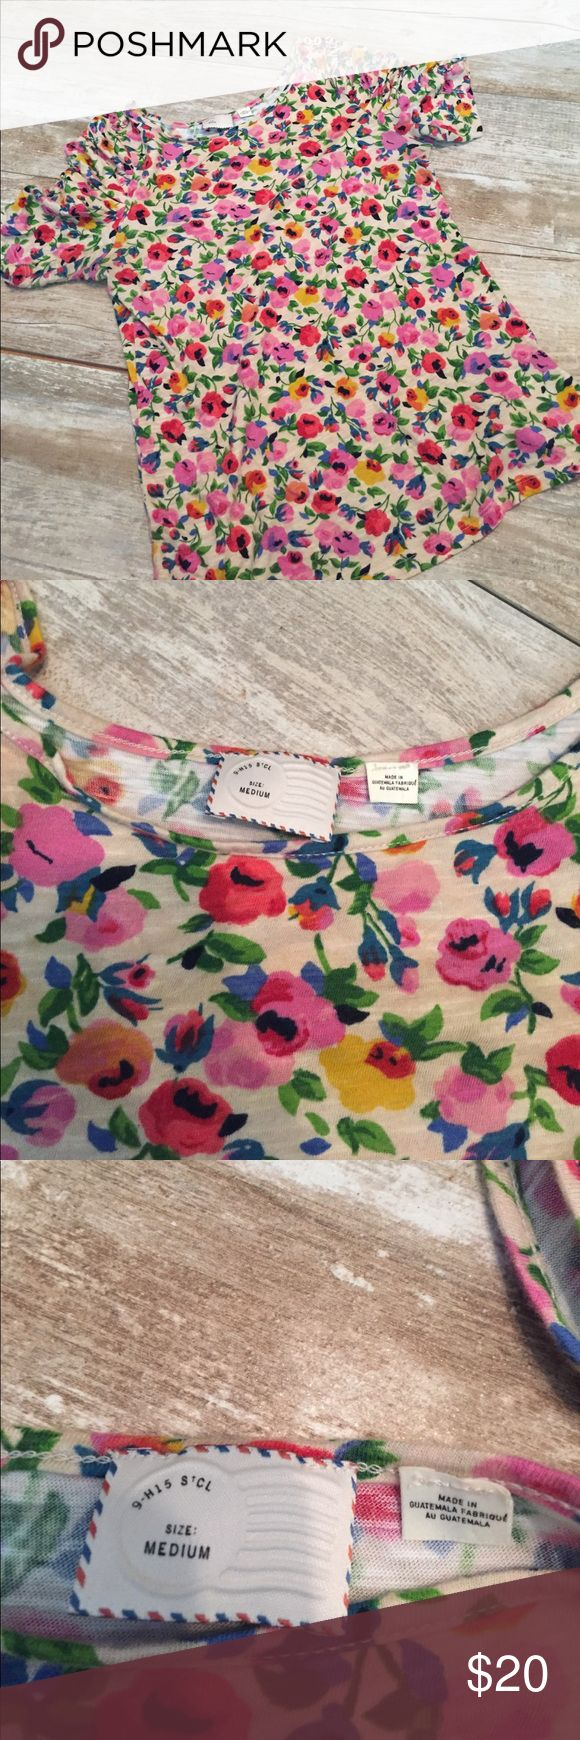 Anthropologie postmark size medium women's top Anthropologie postmark women's size medium floral tee with button detail and ruched sleeve Anthropologie Tops Tees - Short Sleeve